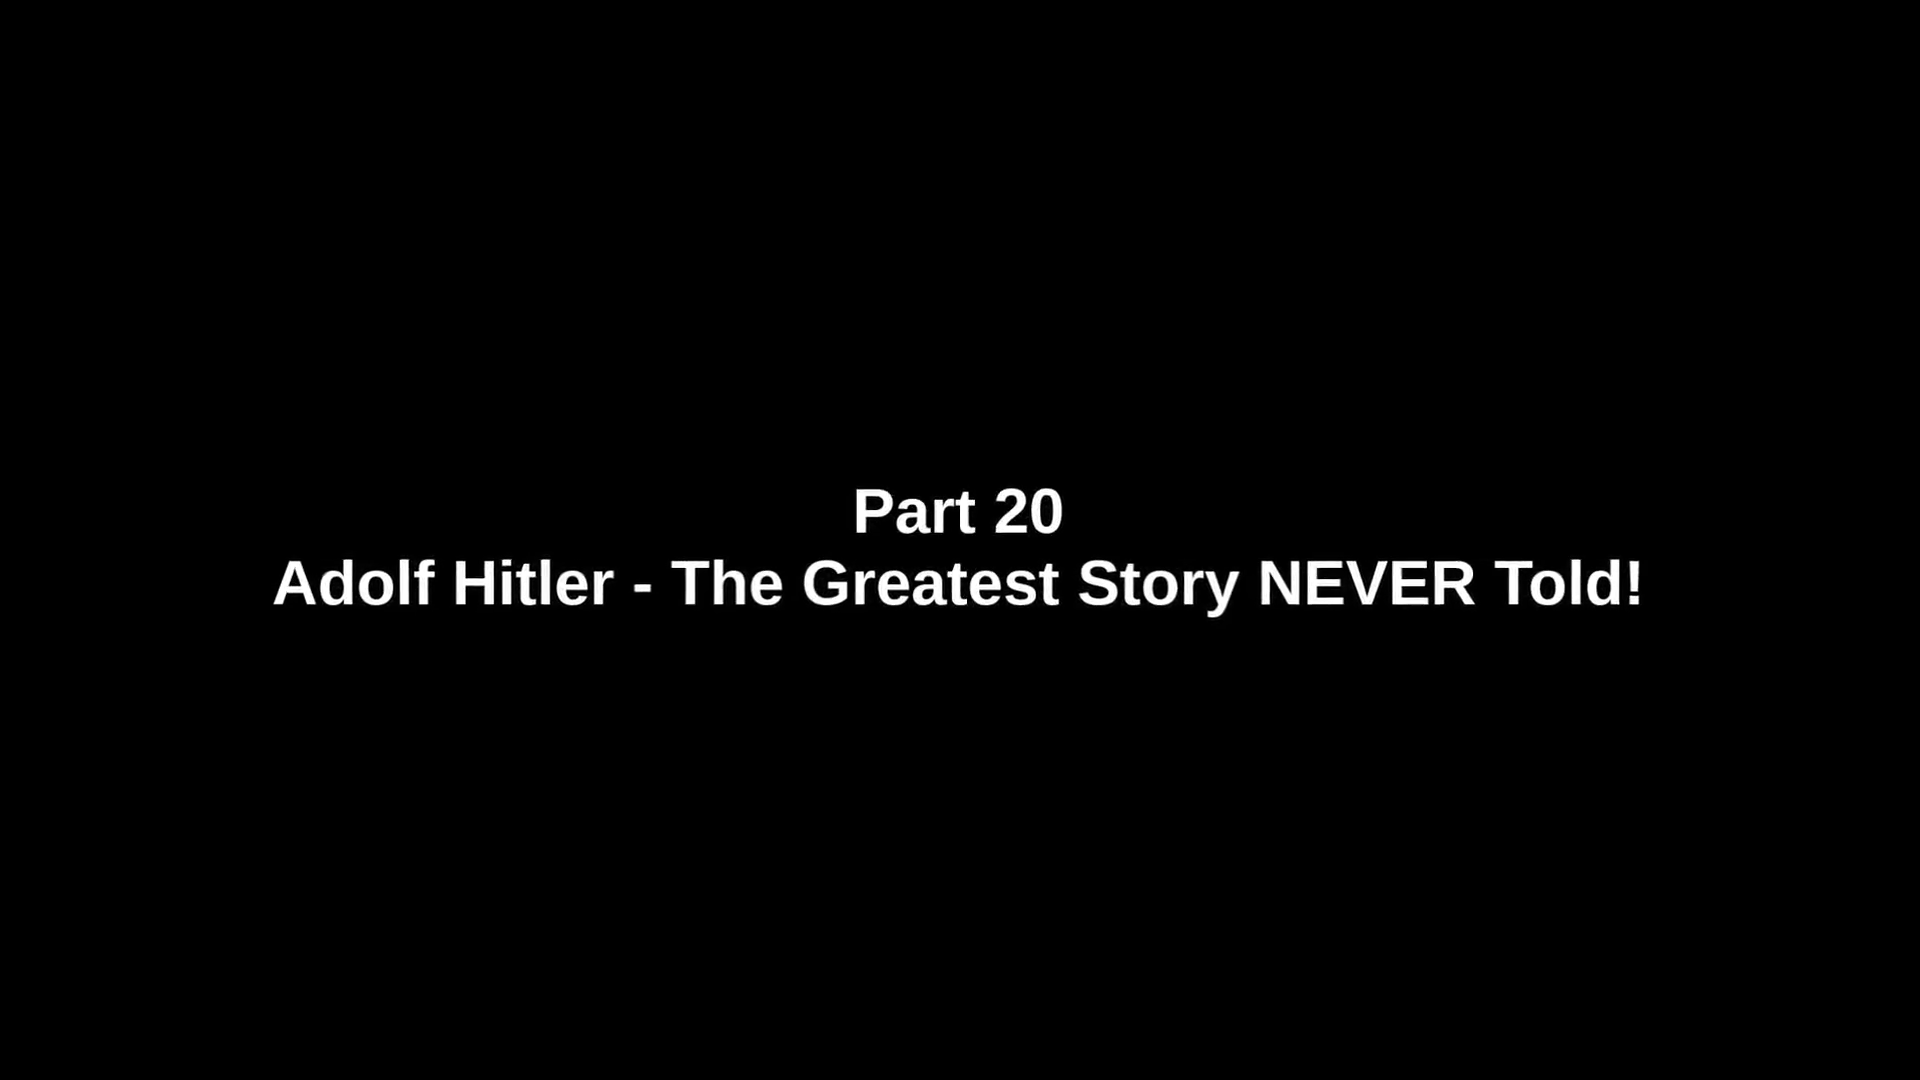 Adolf Hitler: The Greatest Story Never Told (2013) - ΜΕΡΟΣ Δ' (Greek subtitles)